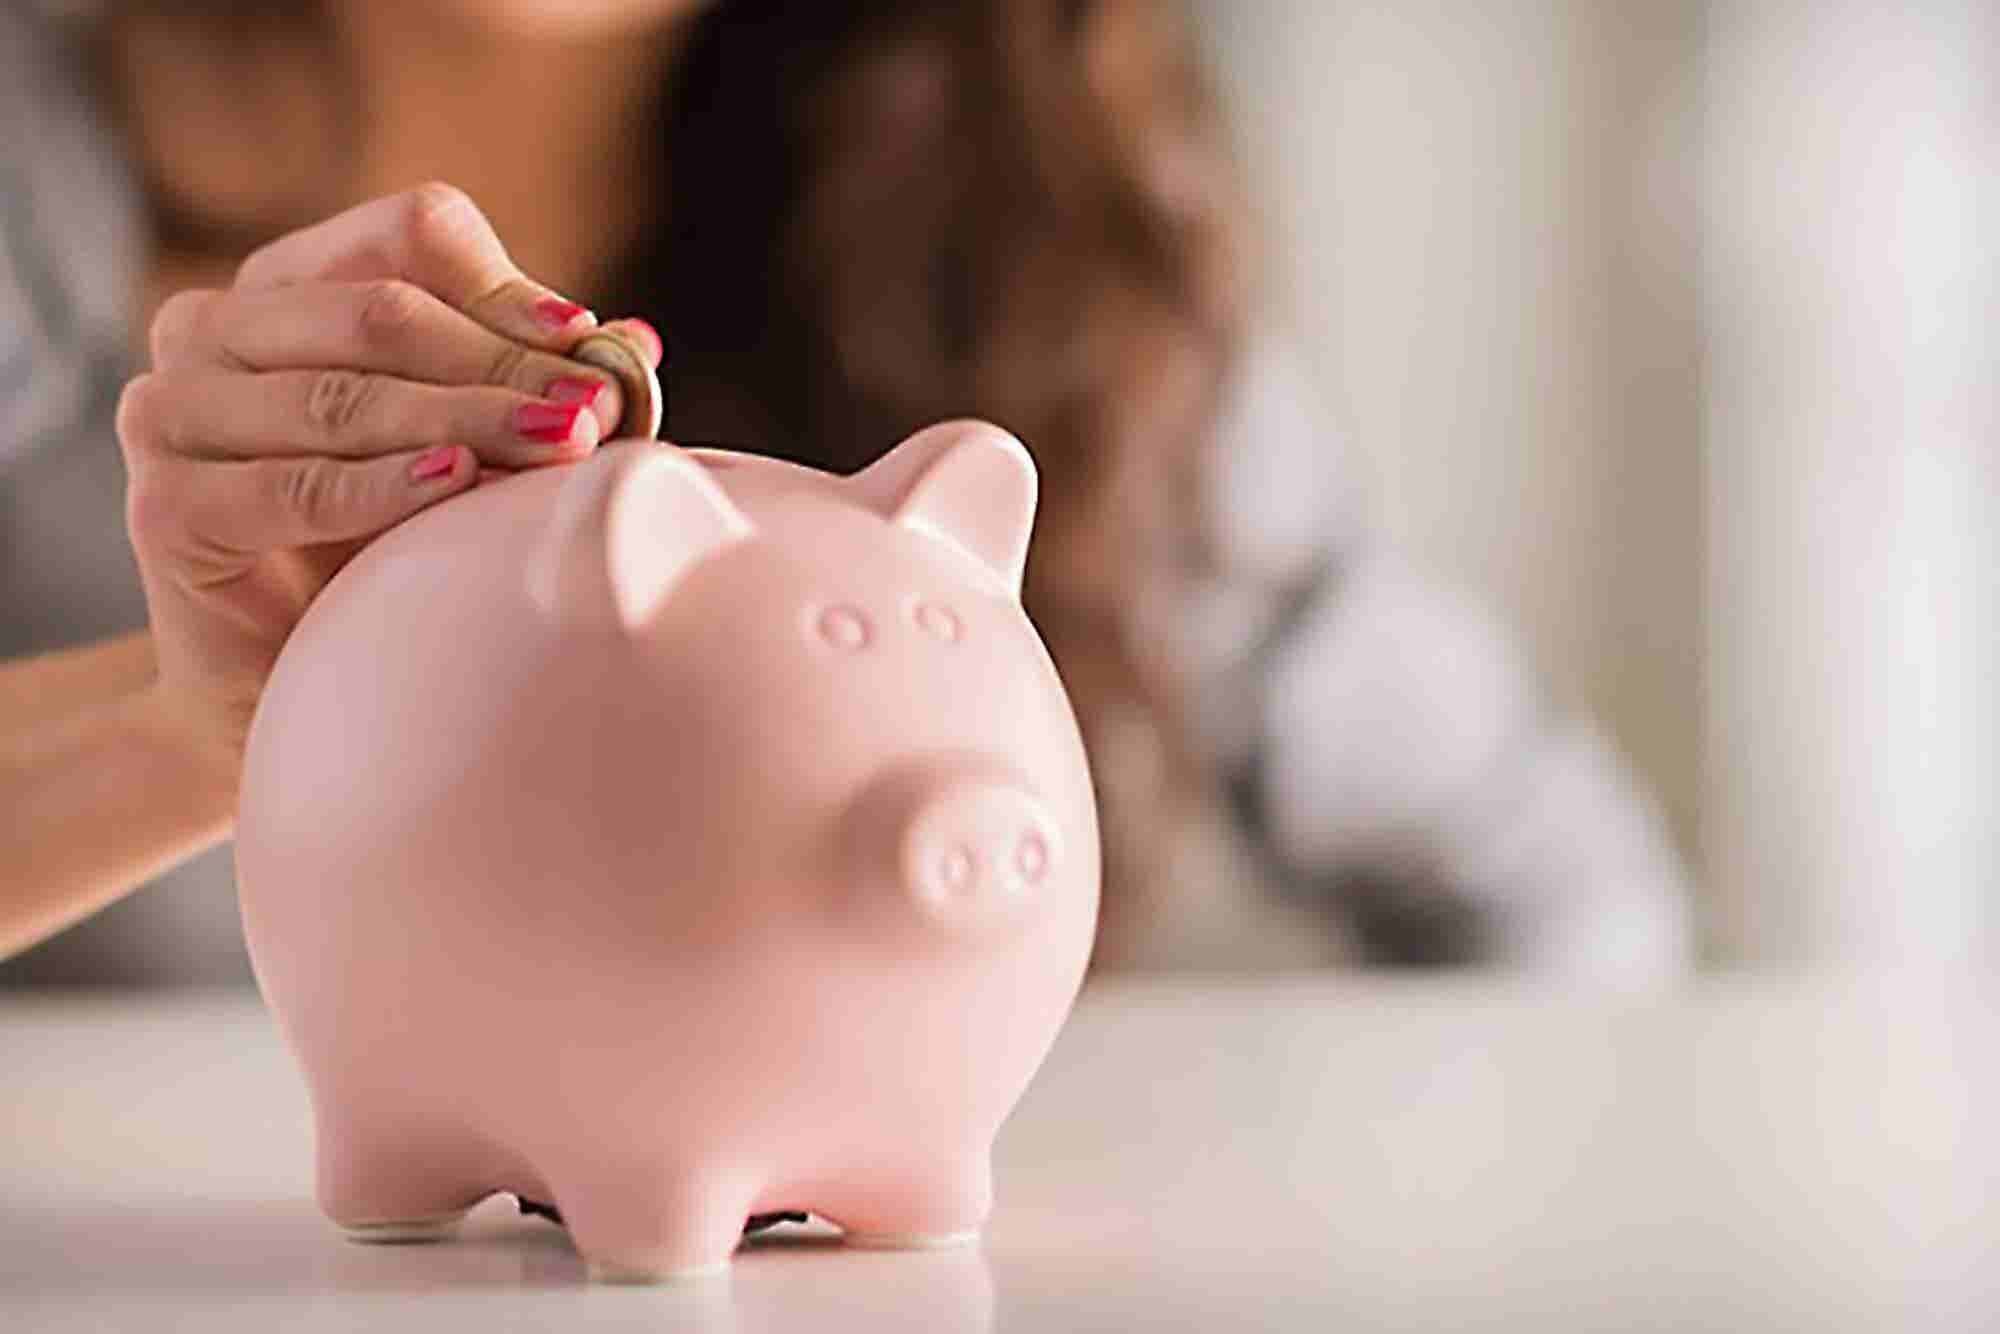 10 Interesting Investments to Make in Your 20s